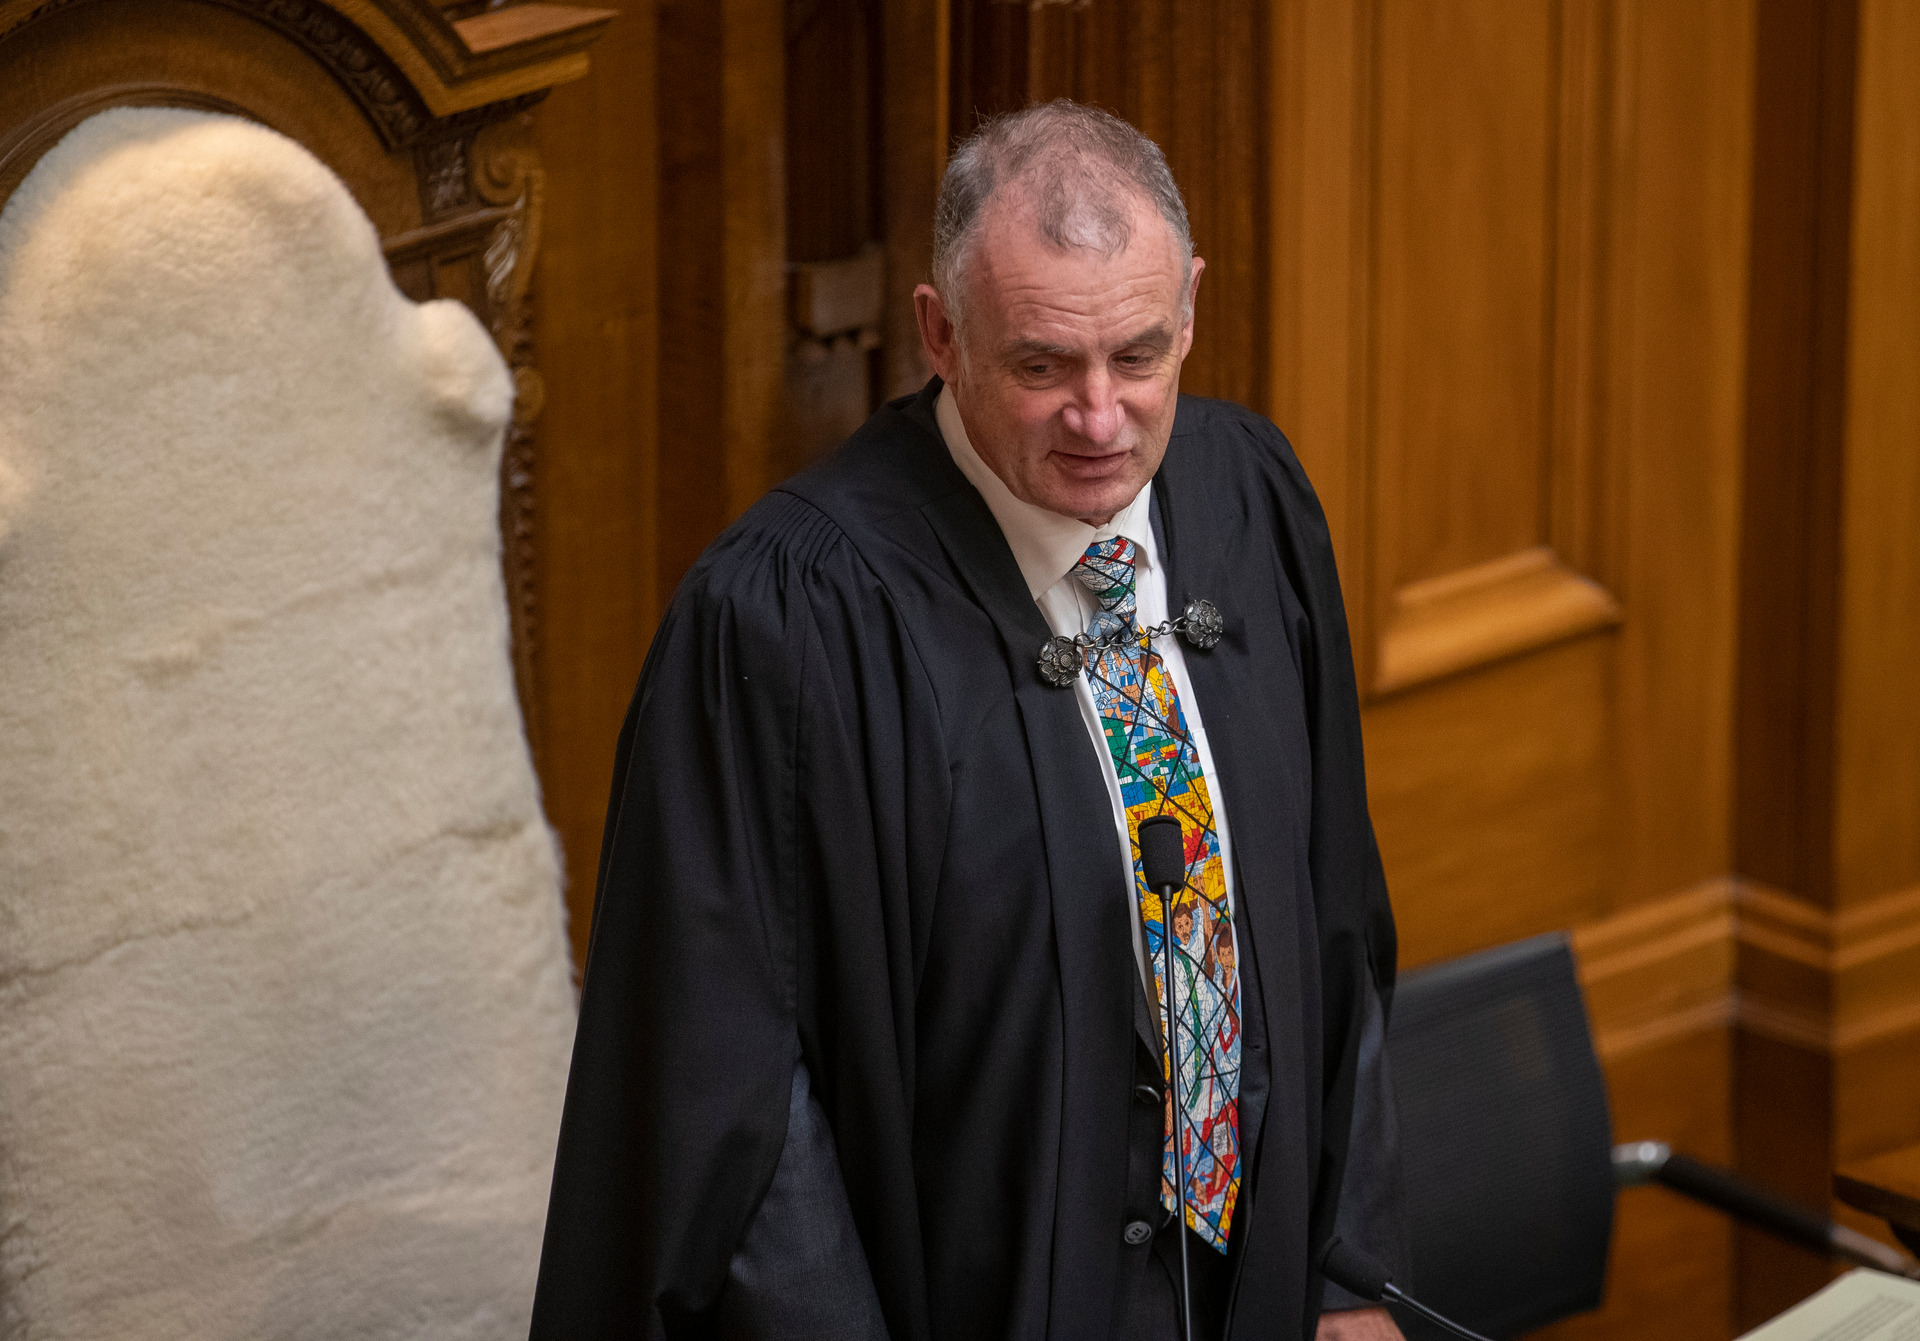 Parliament considers video rule shake-up